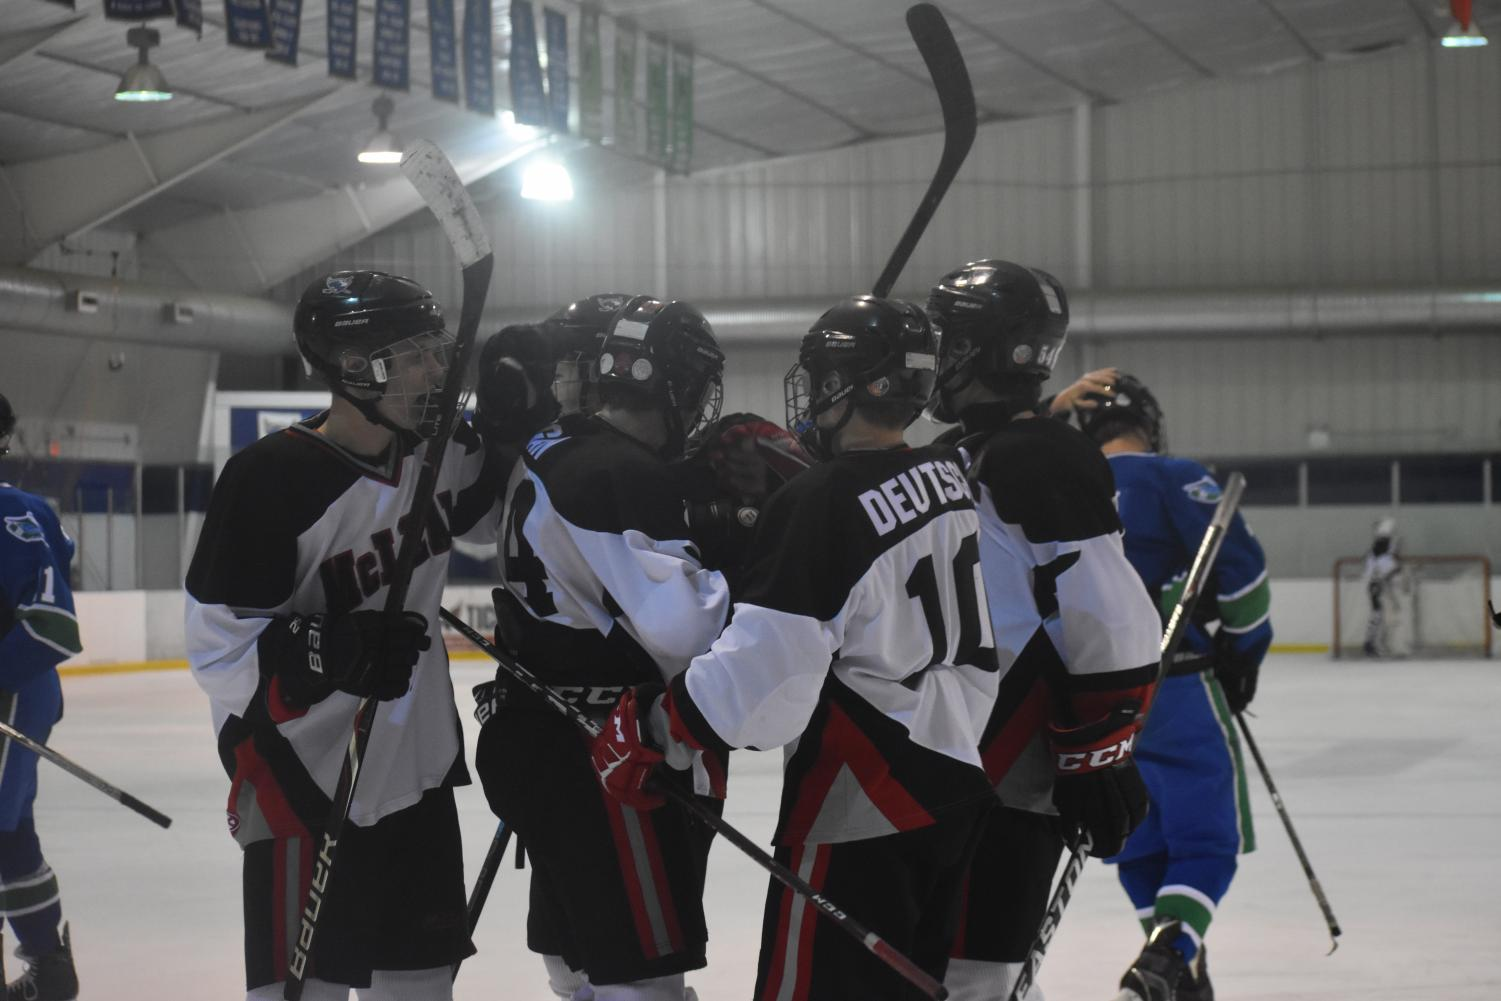 McLean hockey celebrating after the first goal scored by senior Matthew Regan.